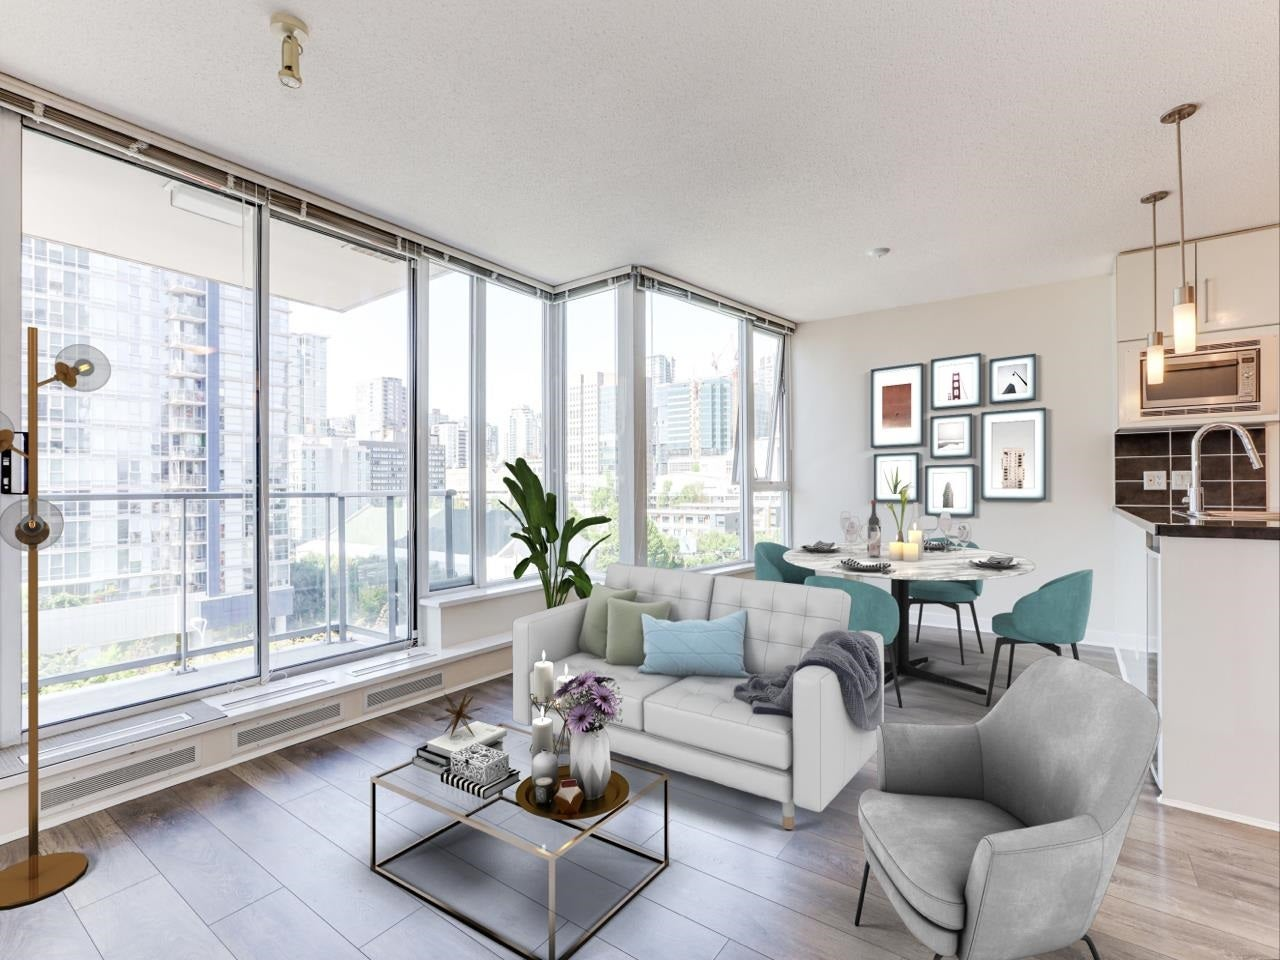 1501 188 KEEFER PLACE - Downtown VW Apartment/Condo for sale, 1 Bedroom (R2598085) - #1